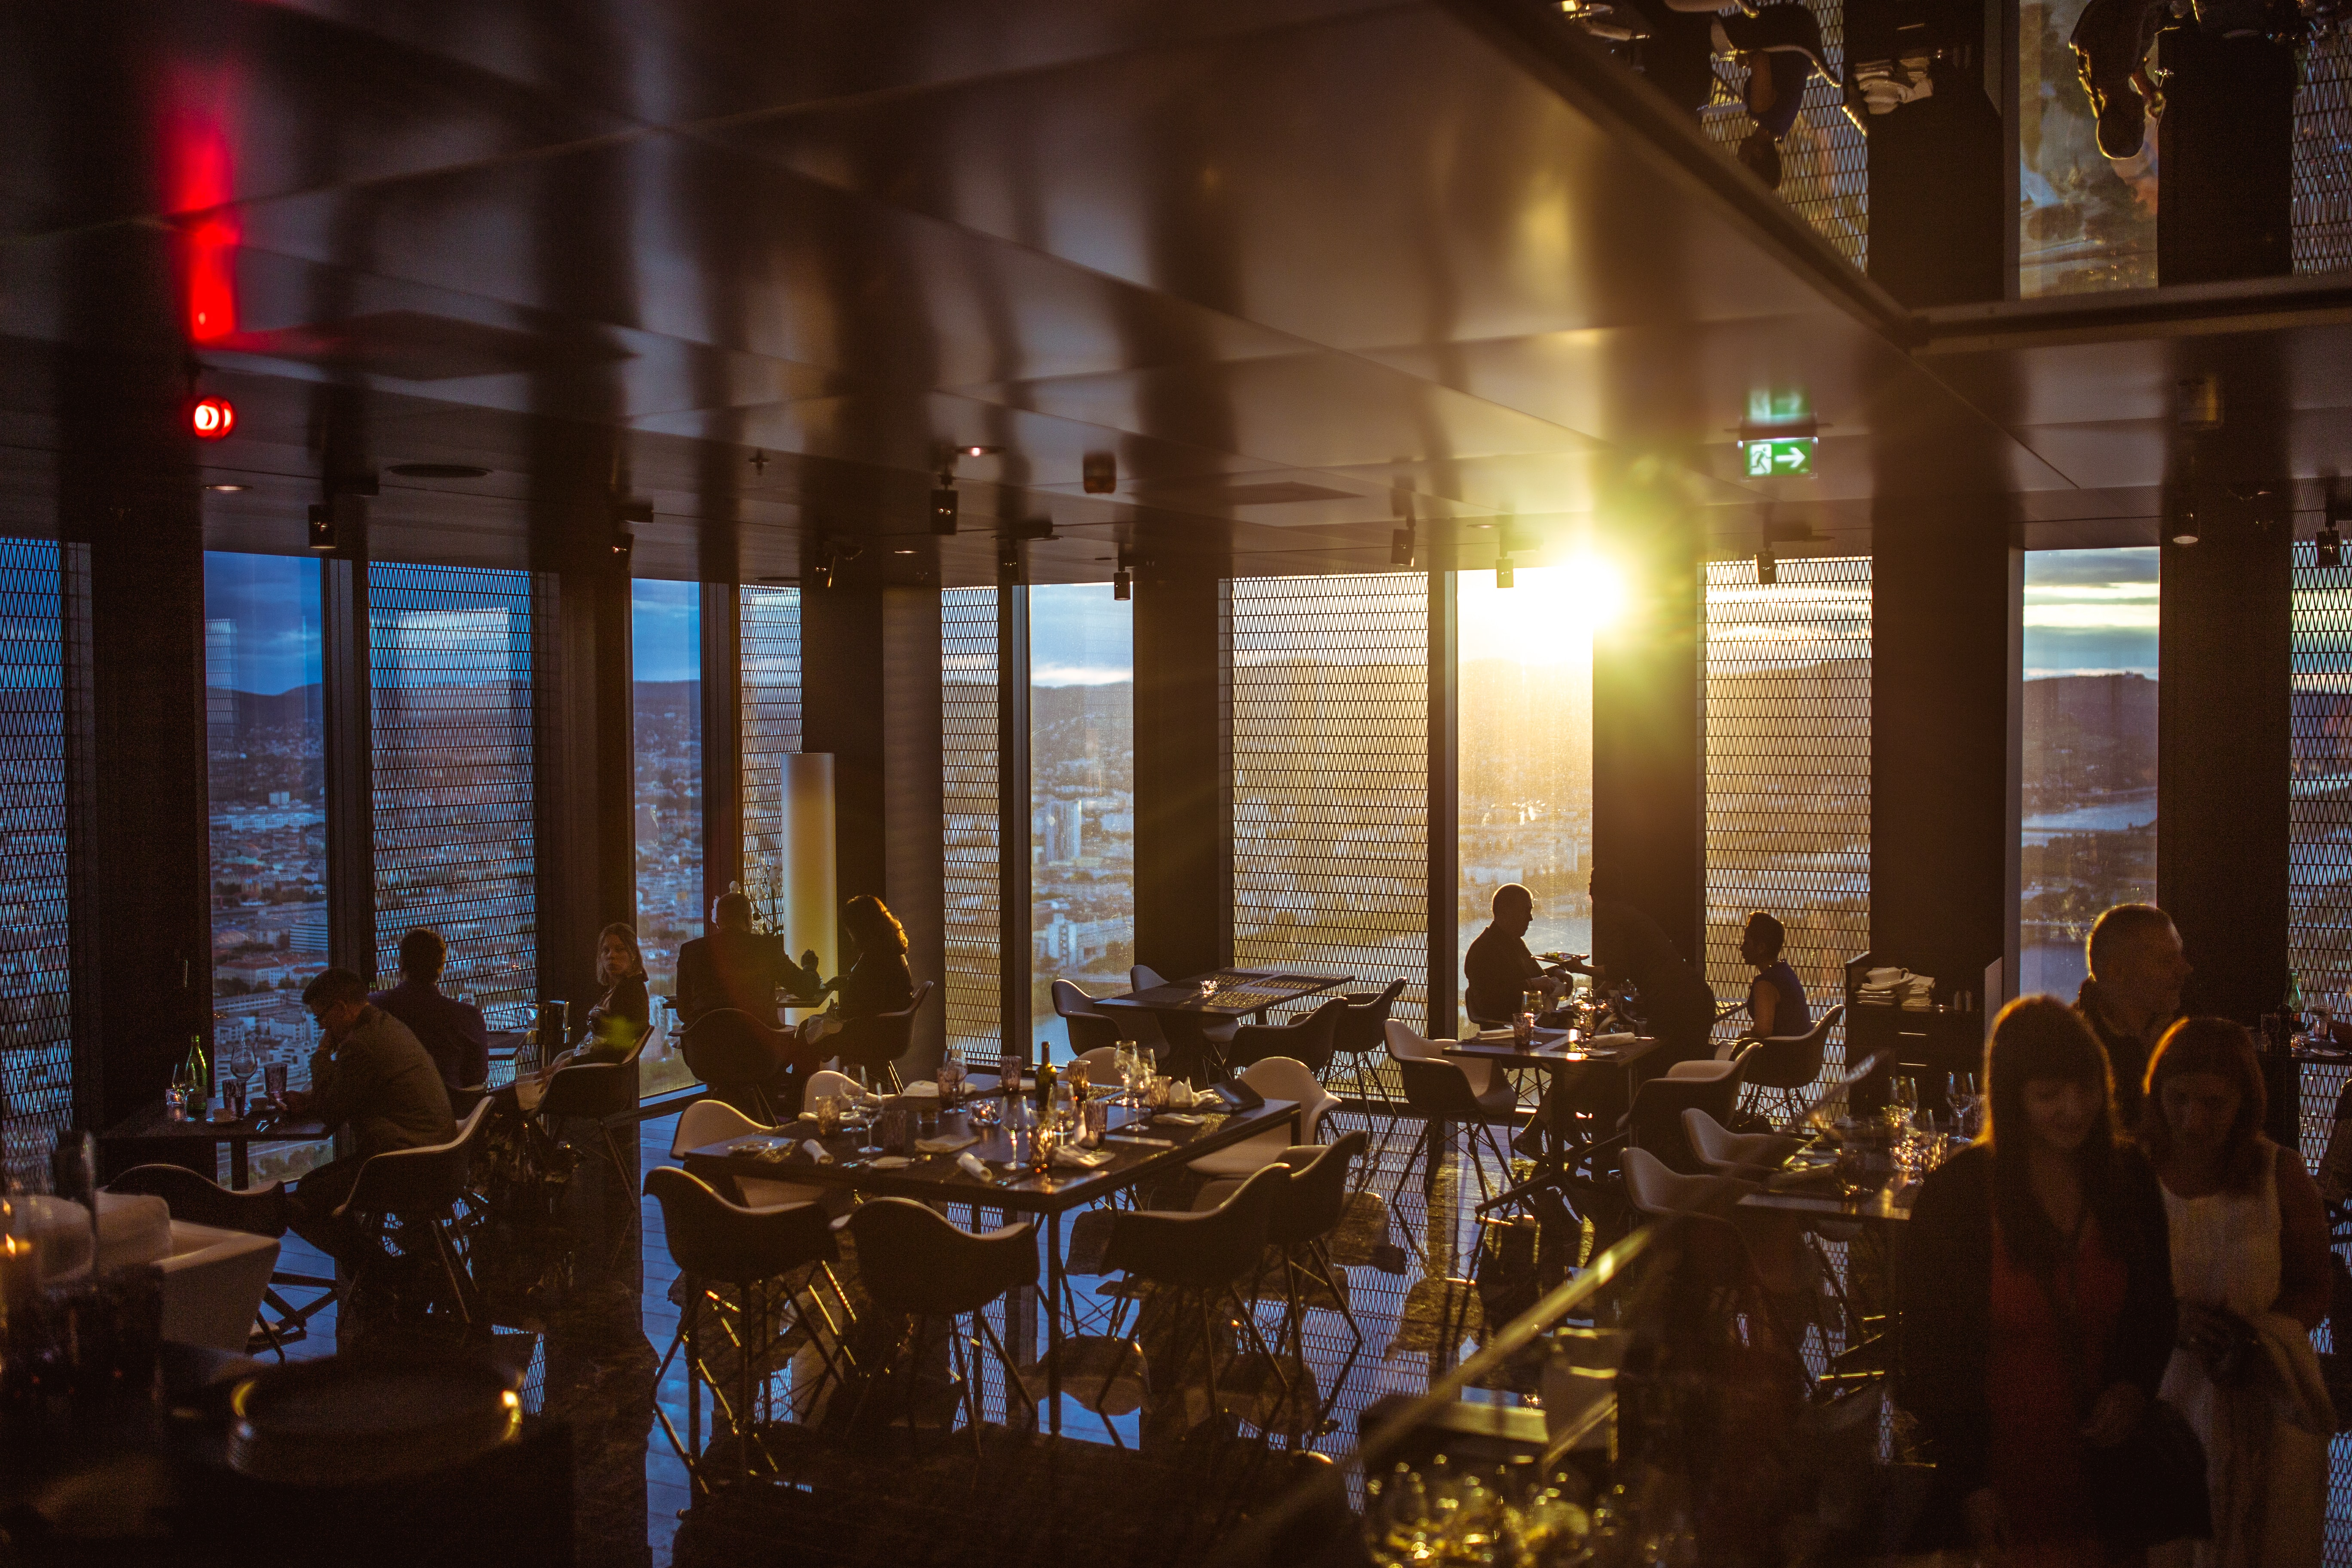 People dining in a high-end indoor restaurant inside a building